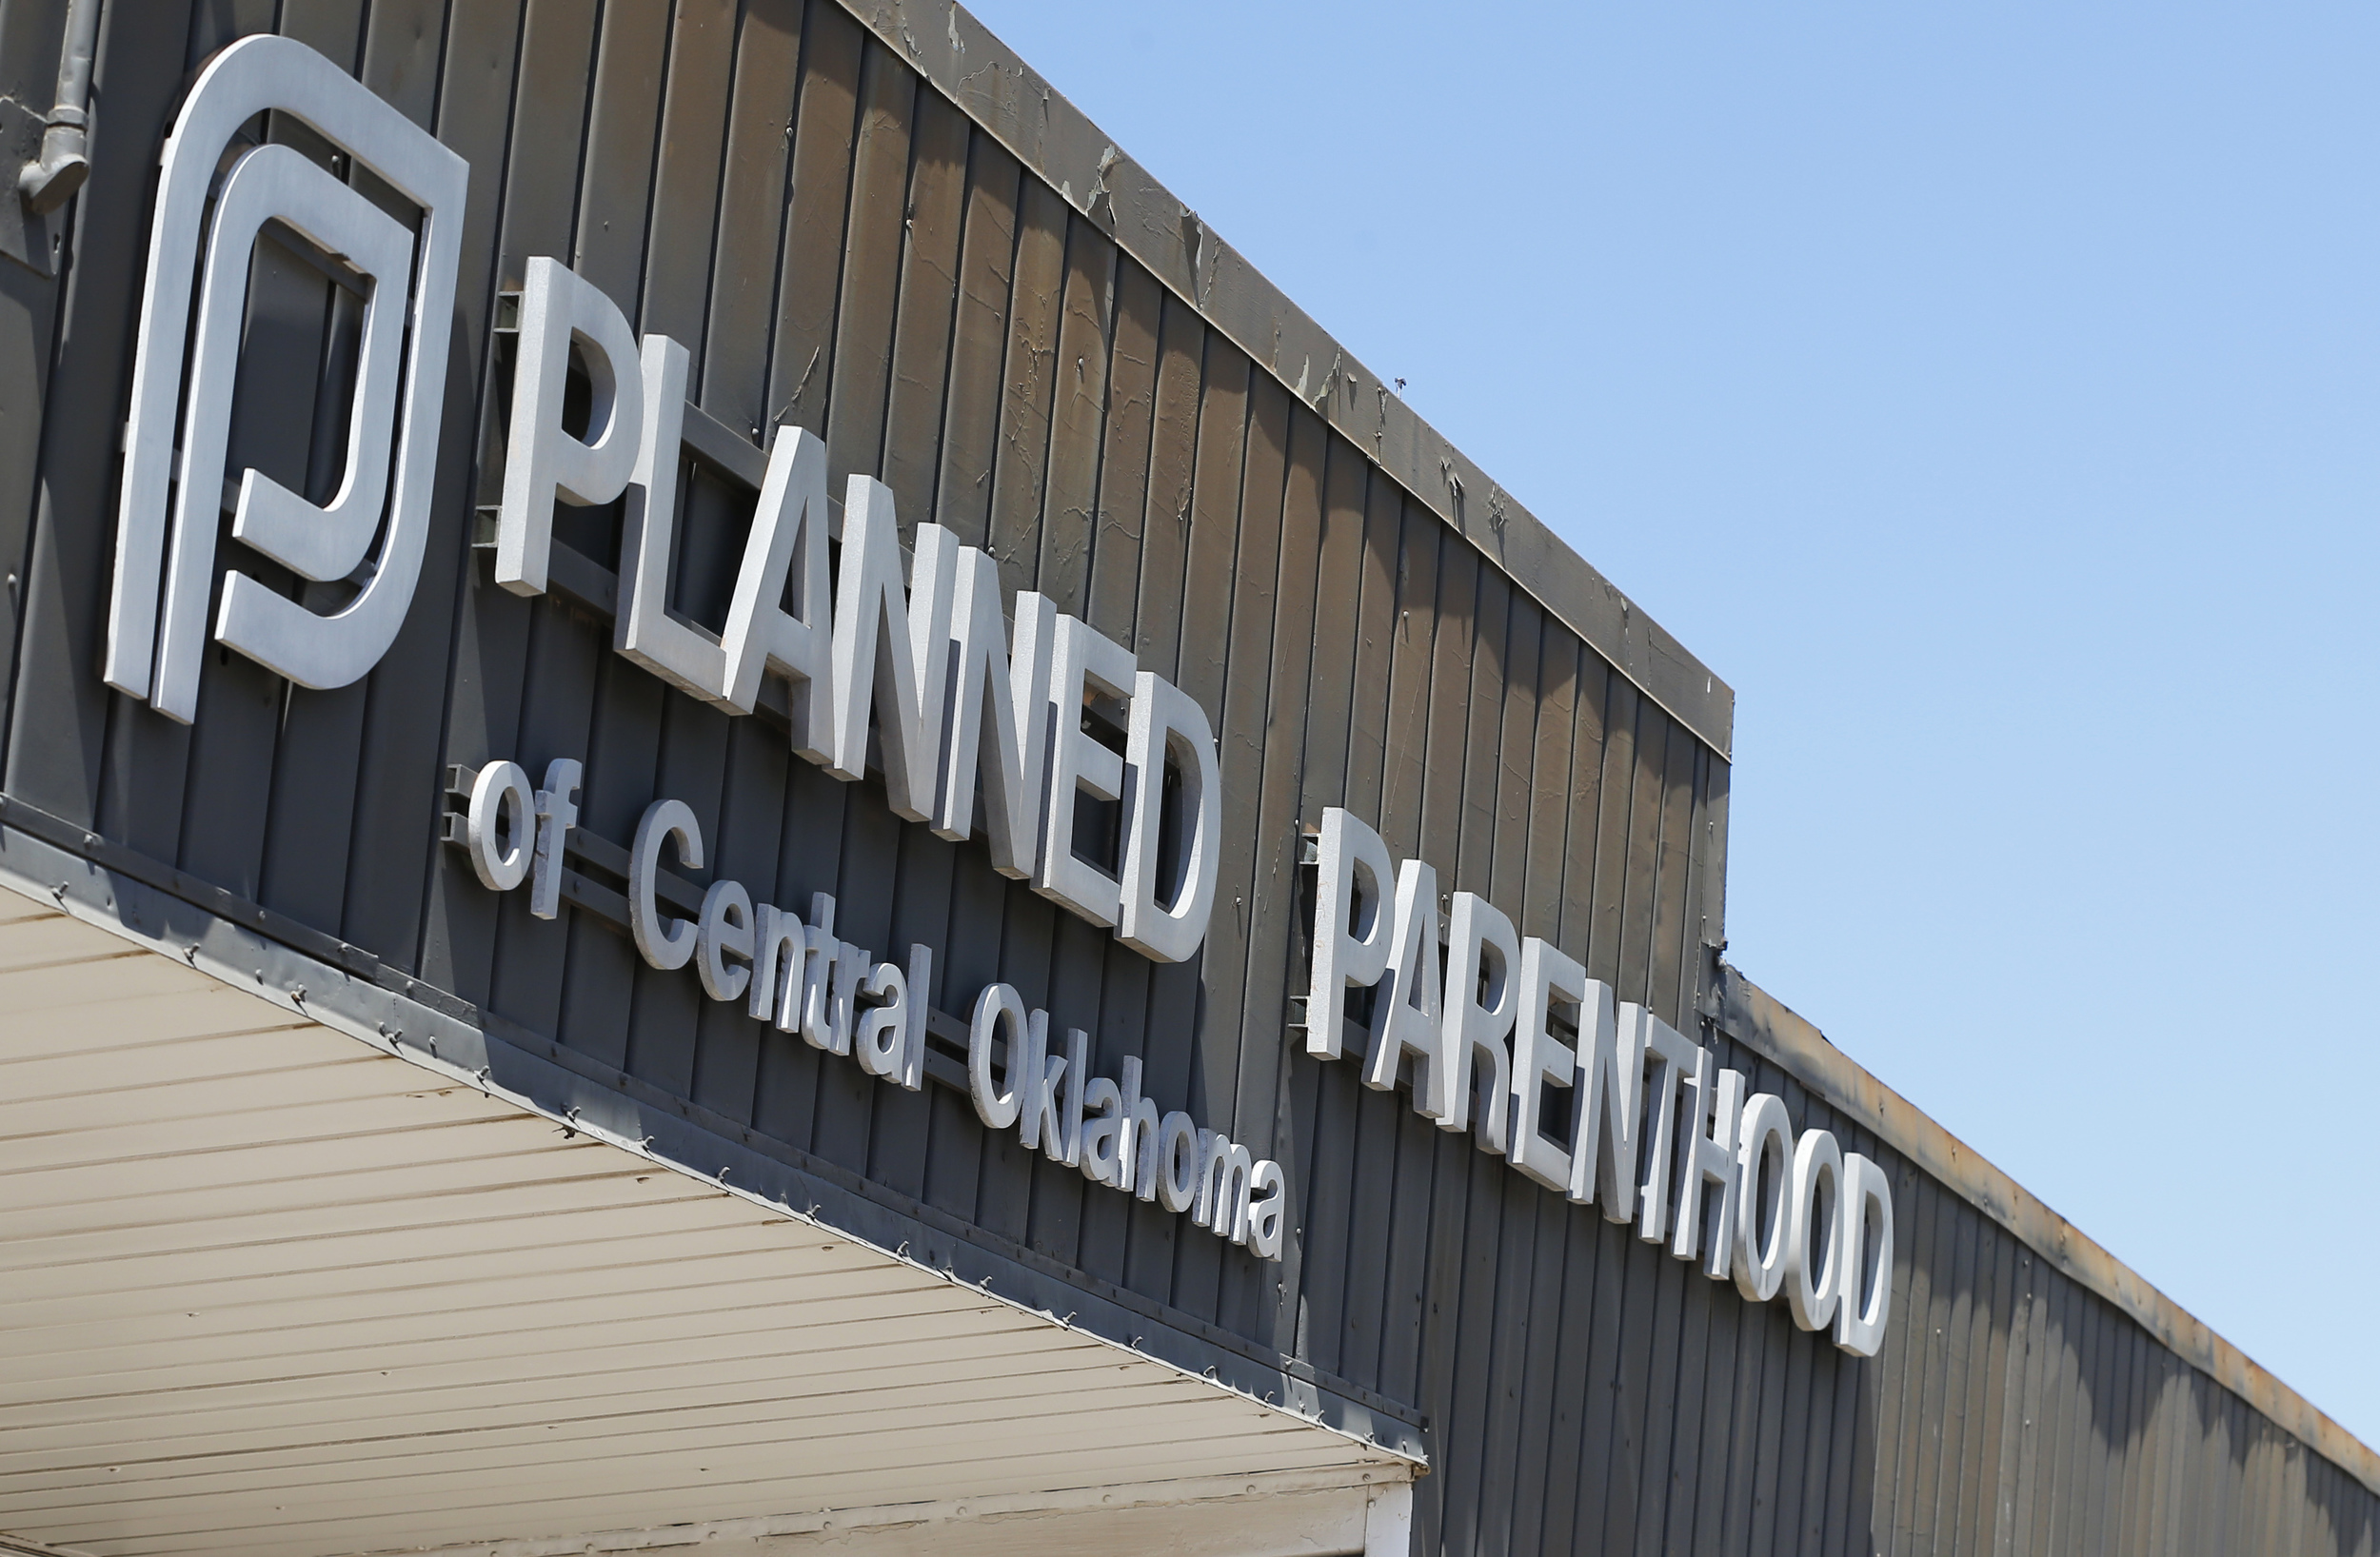 """In this July 24, 2015, file photo, a sign at a Planned Parenthood Clinic is pictured in Oklahoma City. Oklahoma Gov. Mary Fallin is urging the state's Medicaid provider to cancel its contracts with two Planned Parenthood affiliates, citing what she called a """"high rate of billing errors."""" (Sue Ogrocki, File/AP)"""